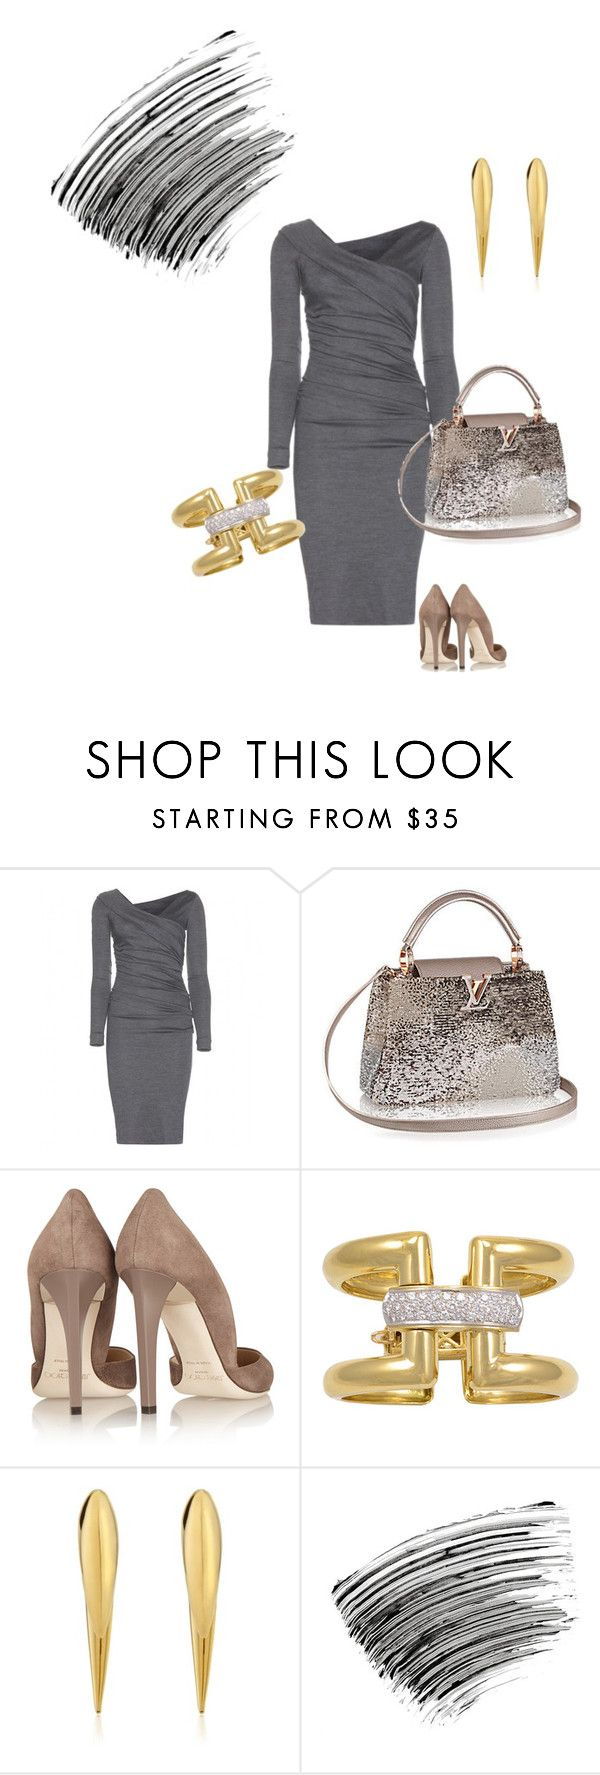 """""""Untitled #175"""" by grownupfashionfun ❤ liked on Polyvore featuring Diane Von Furstenberg, Jimmy Choo, Shaun Leane and Bobbi Brown Cosmetics"""